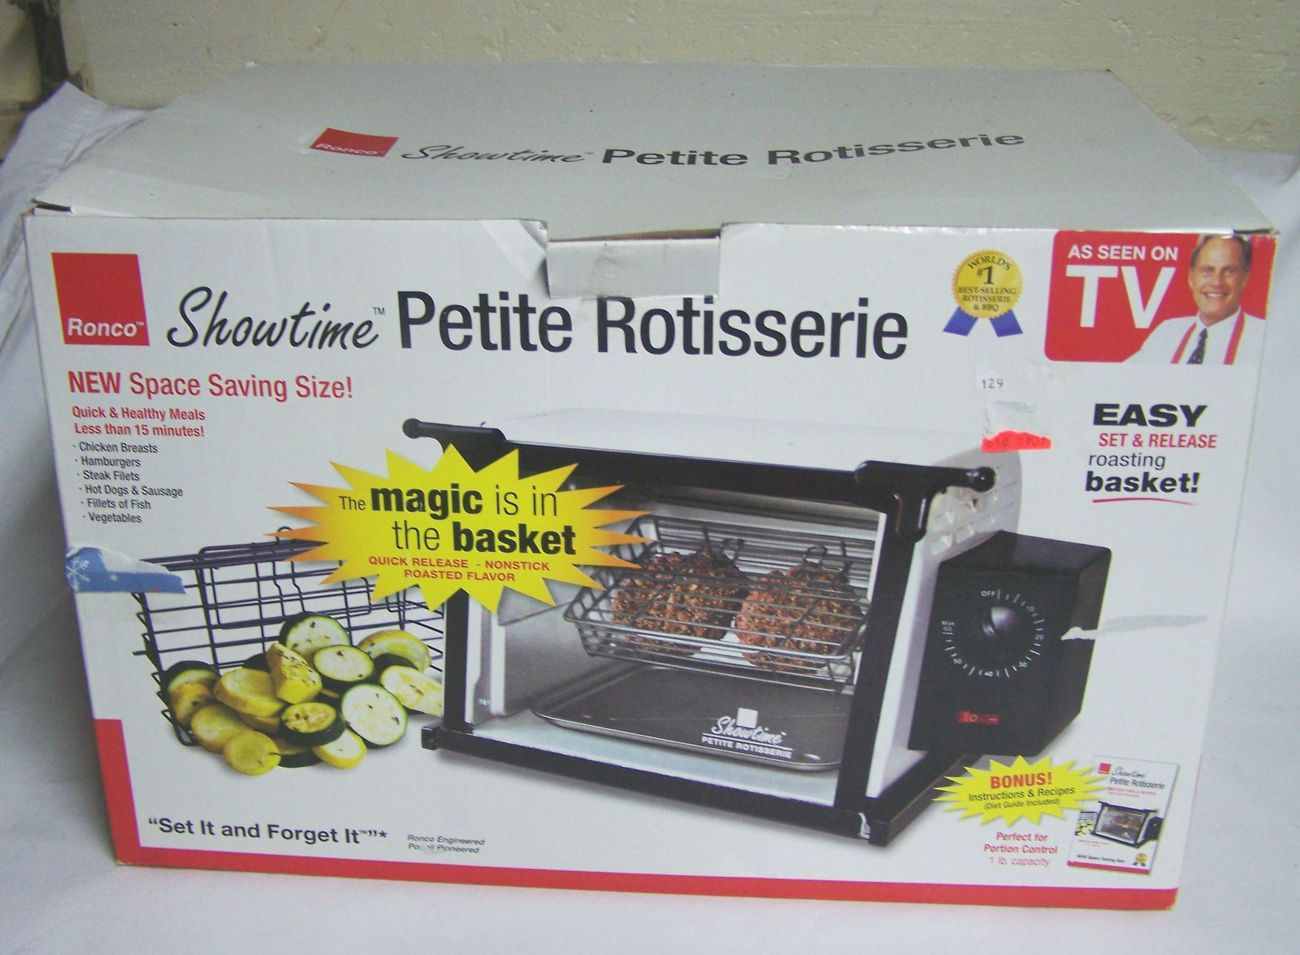 ronco showtime petite rotisserie as seen on tv new in box rotisseries. Black Bedroom Furniture Sets. Home Design Ideas